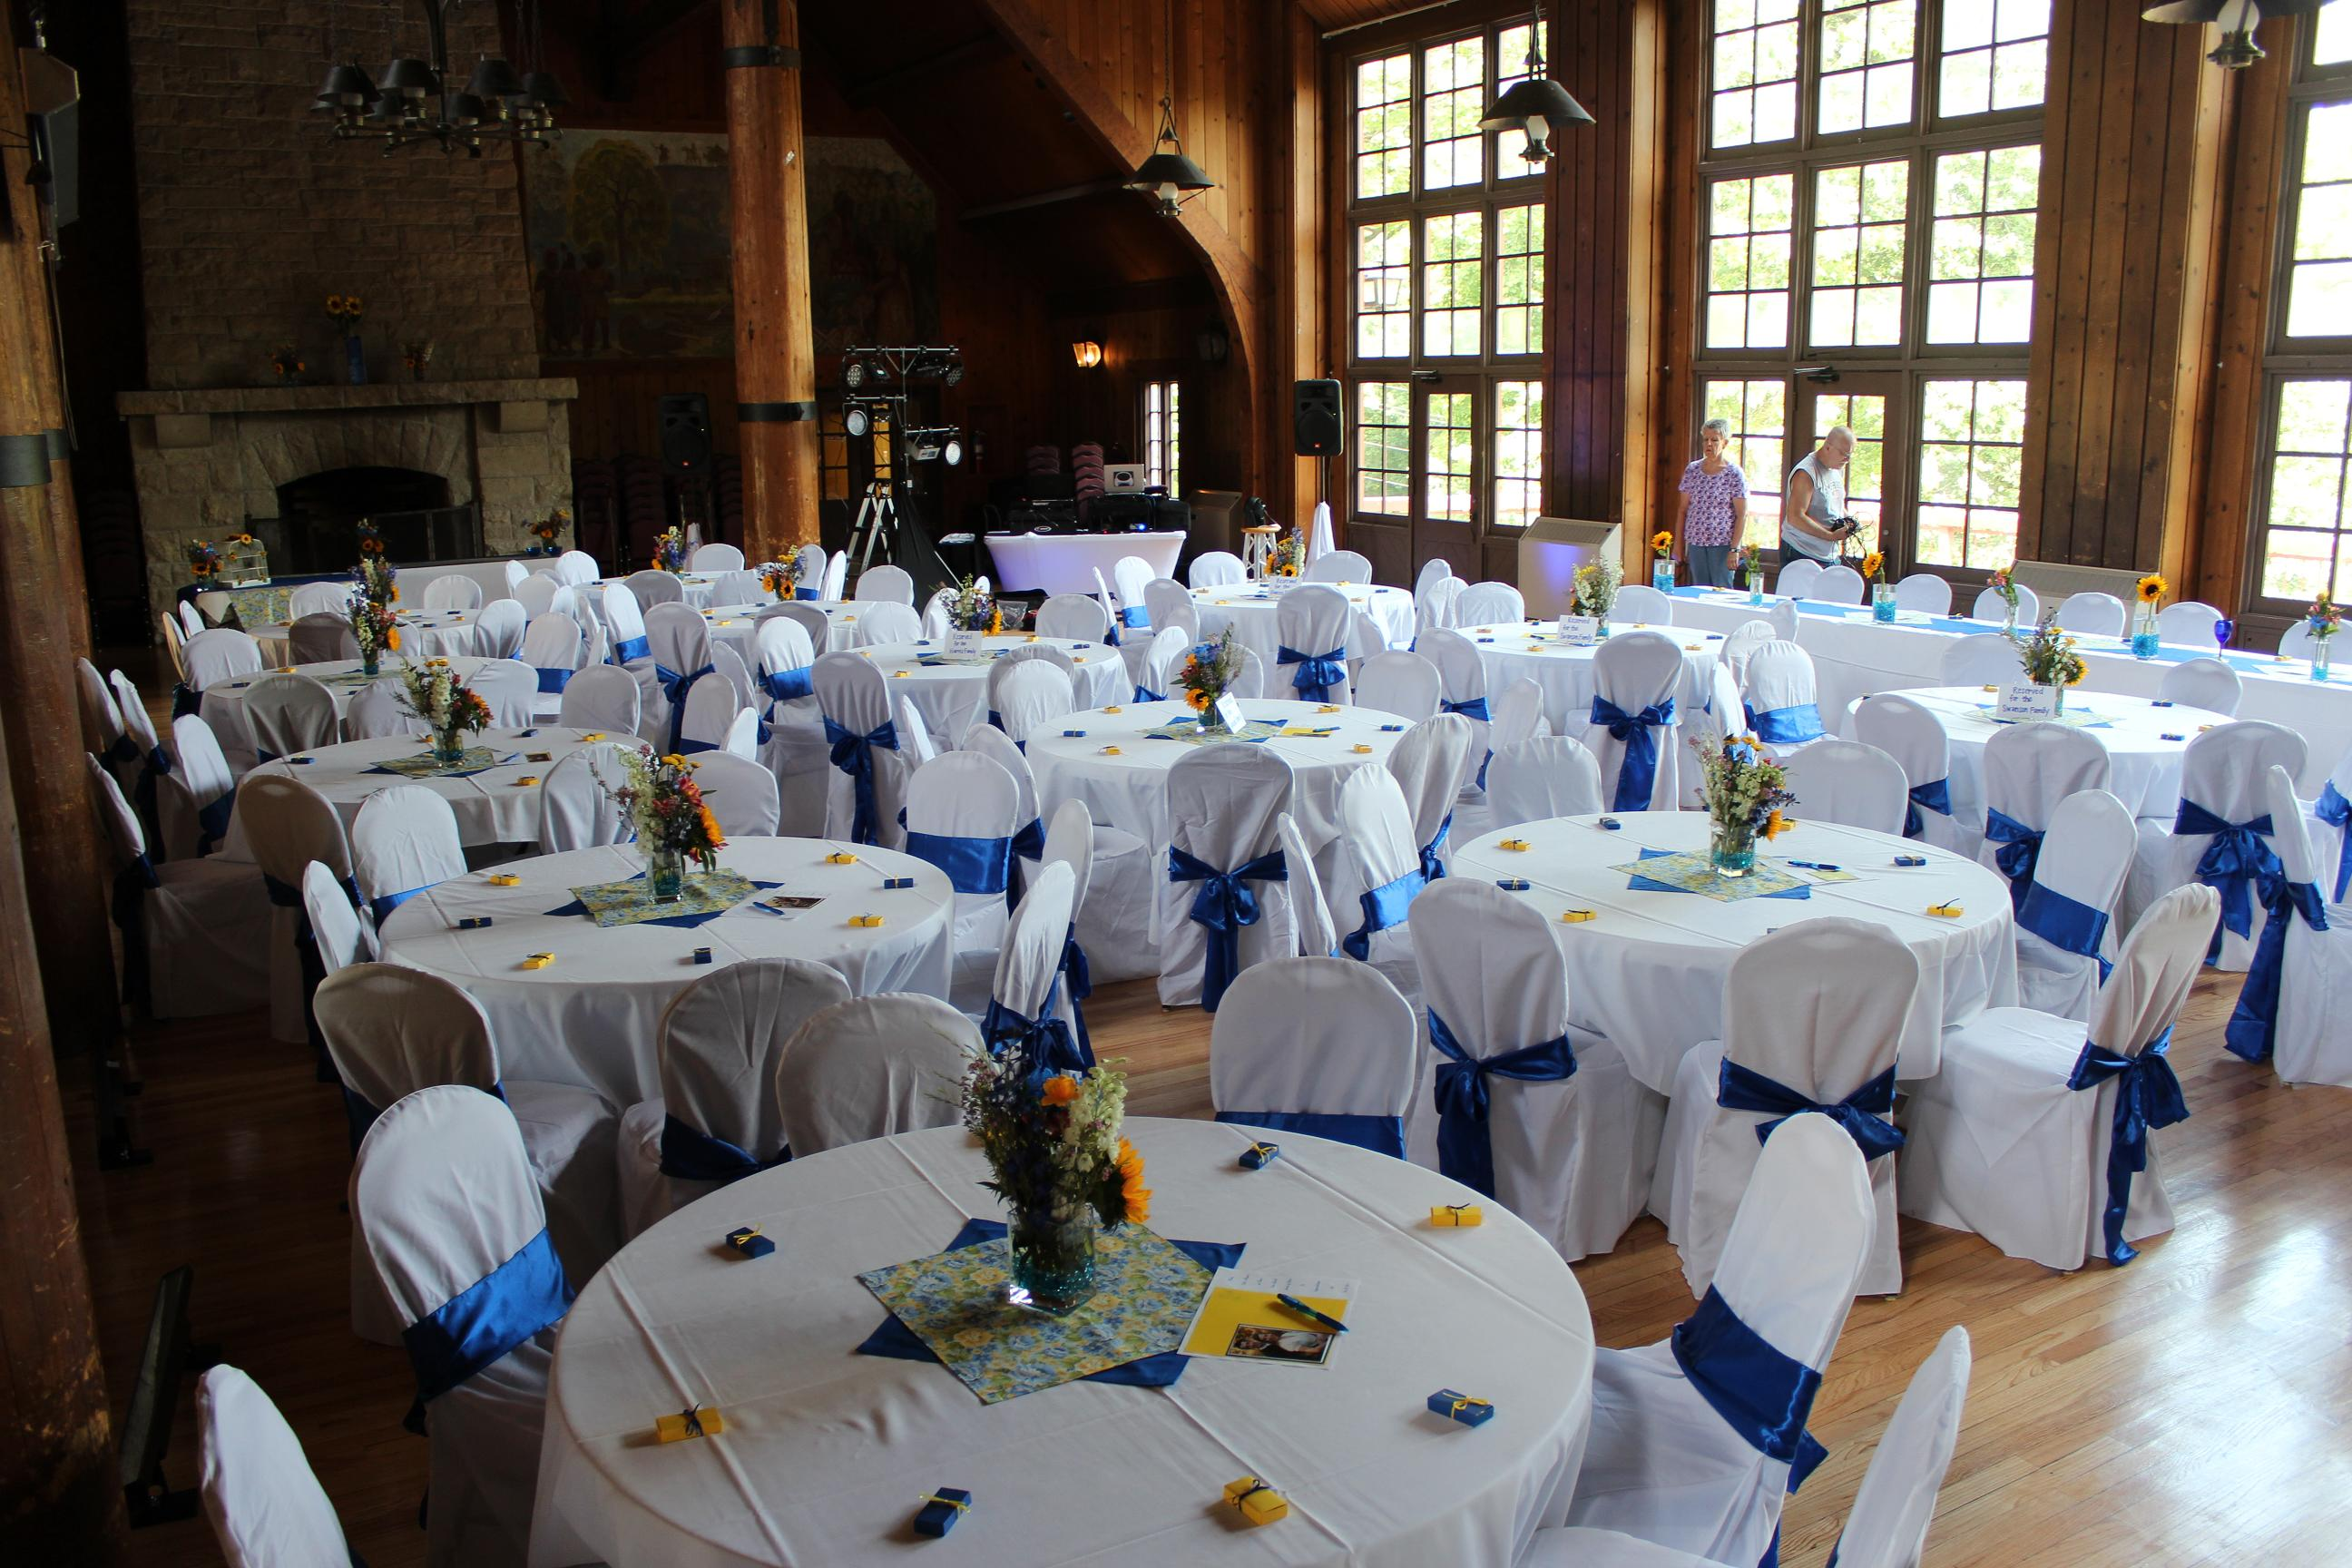 chair cover for rent wedding folding dimensions 1 rentals of indianapolis and sash rental banquet covers with royal blue sashes